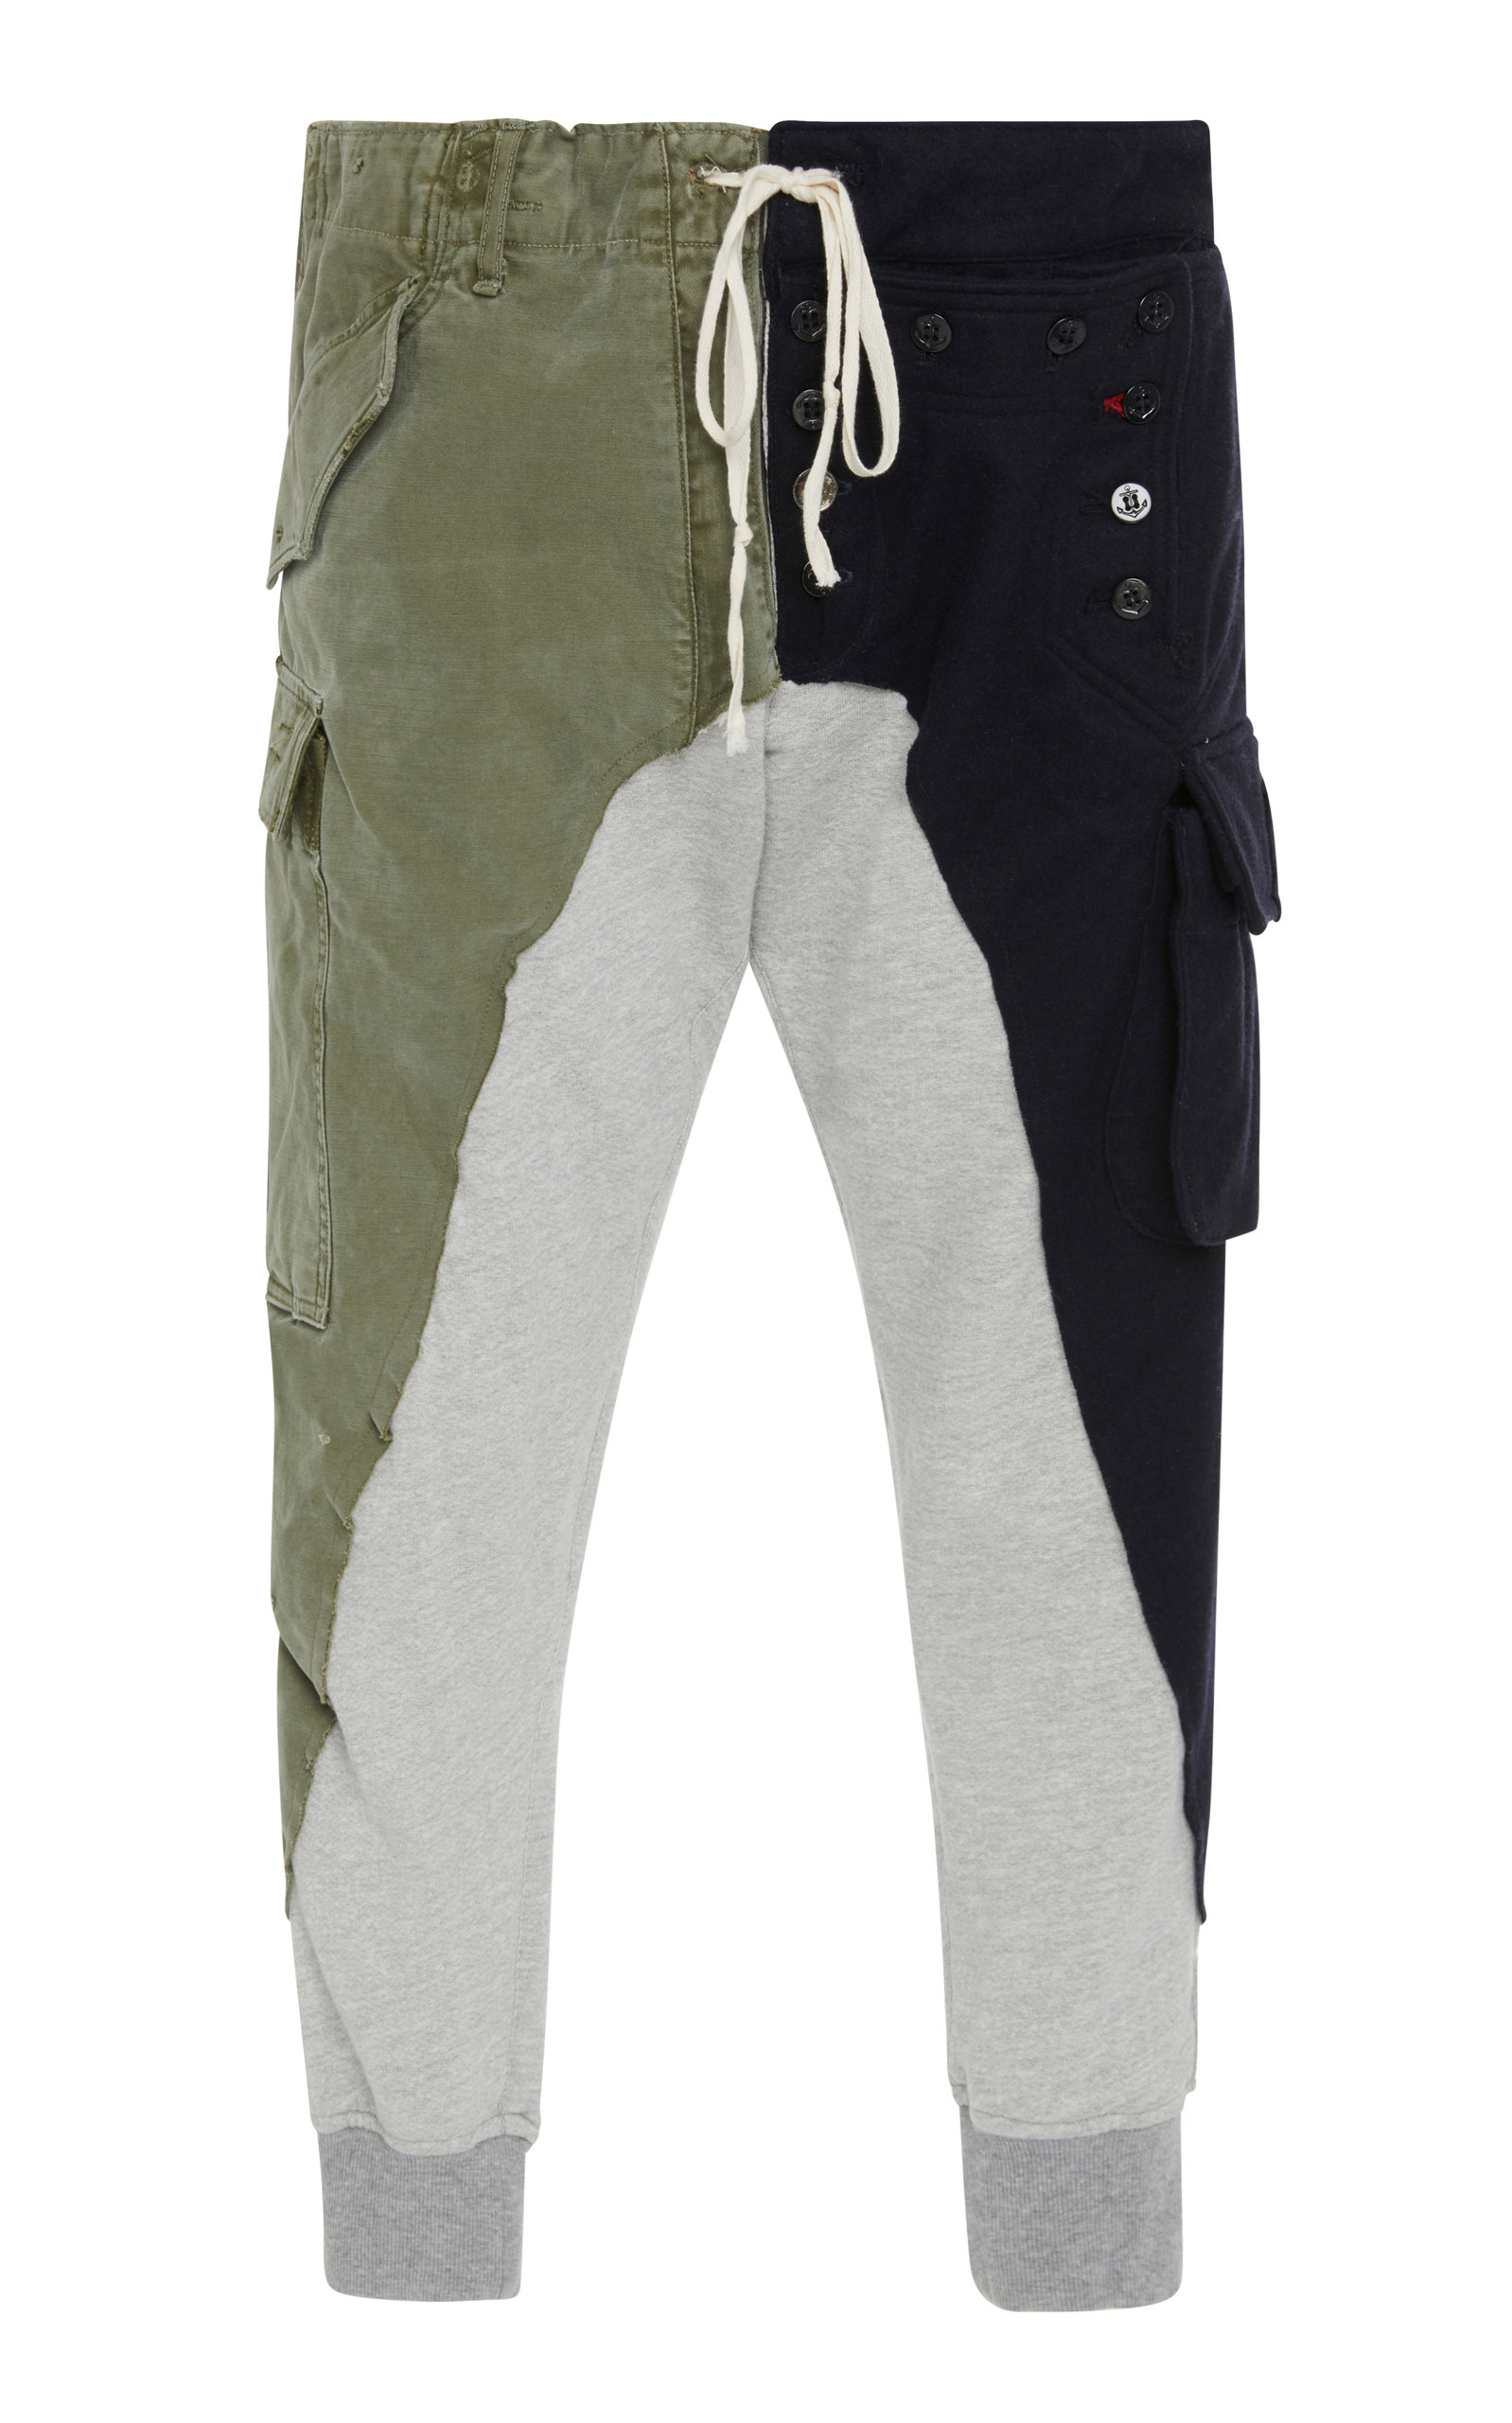 GREG LAUREN PATCHWORK-EFFECT COTTON AND WOOL TRACK PANTS